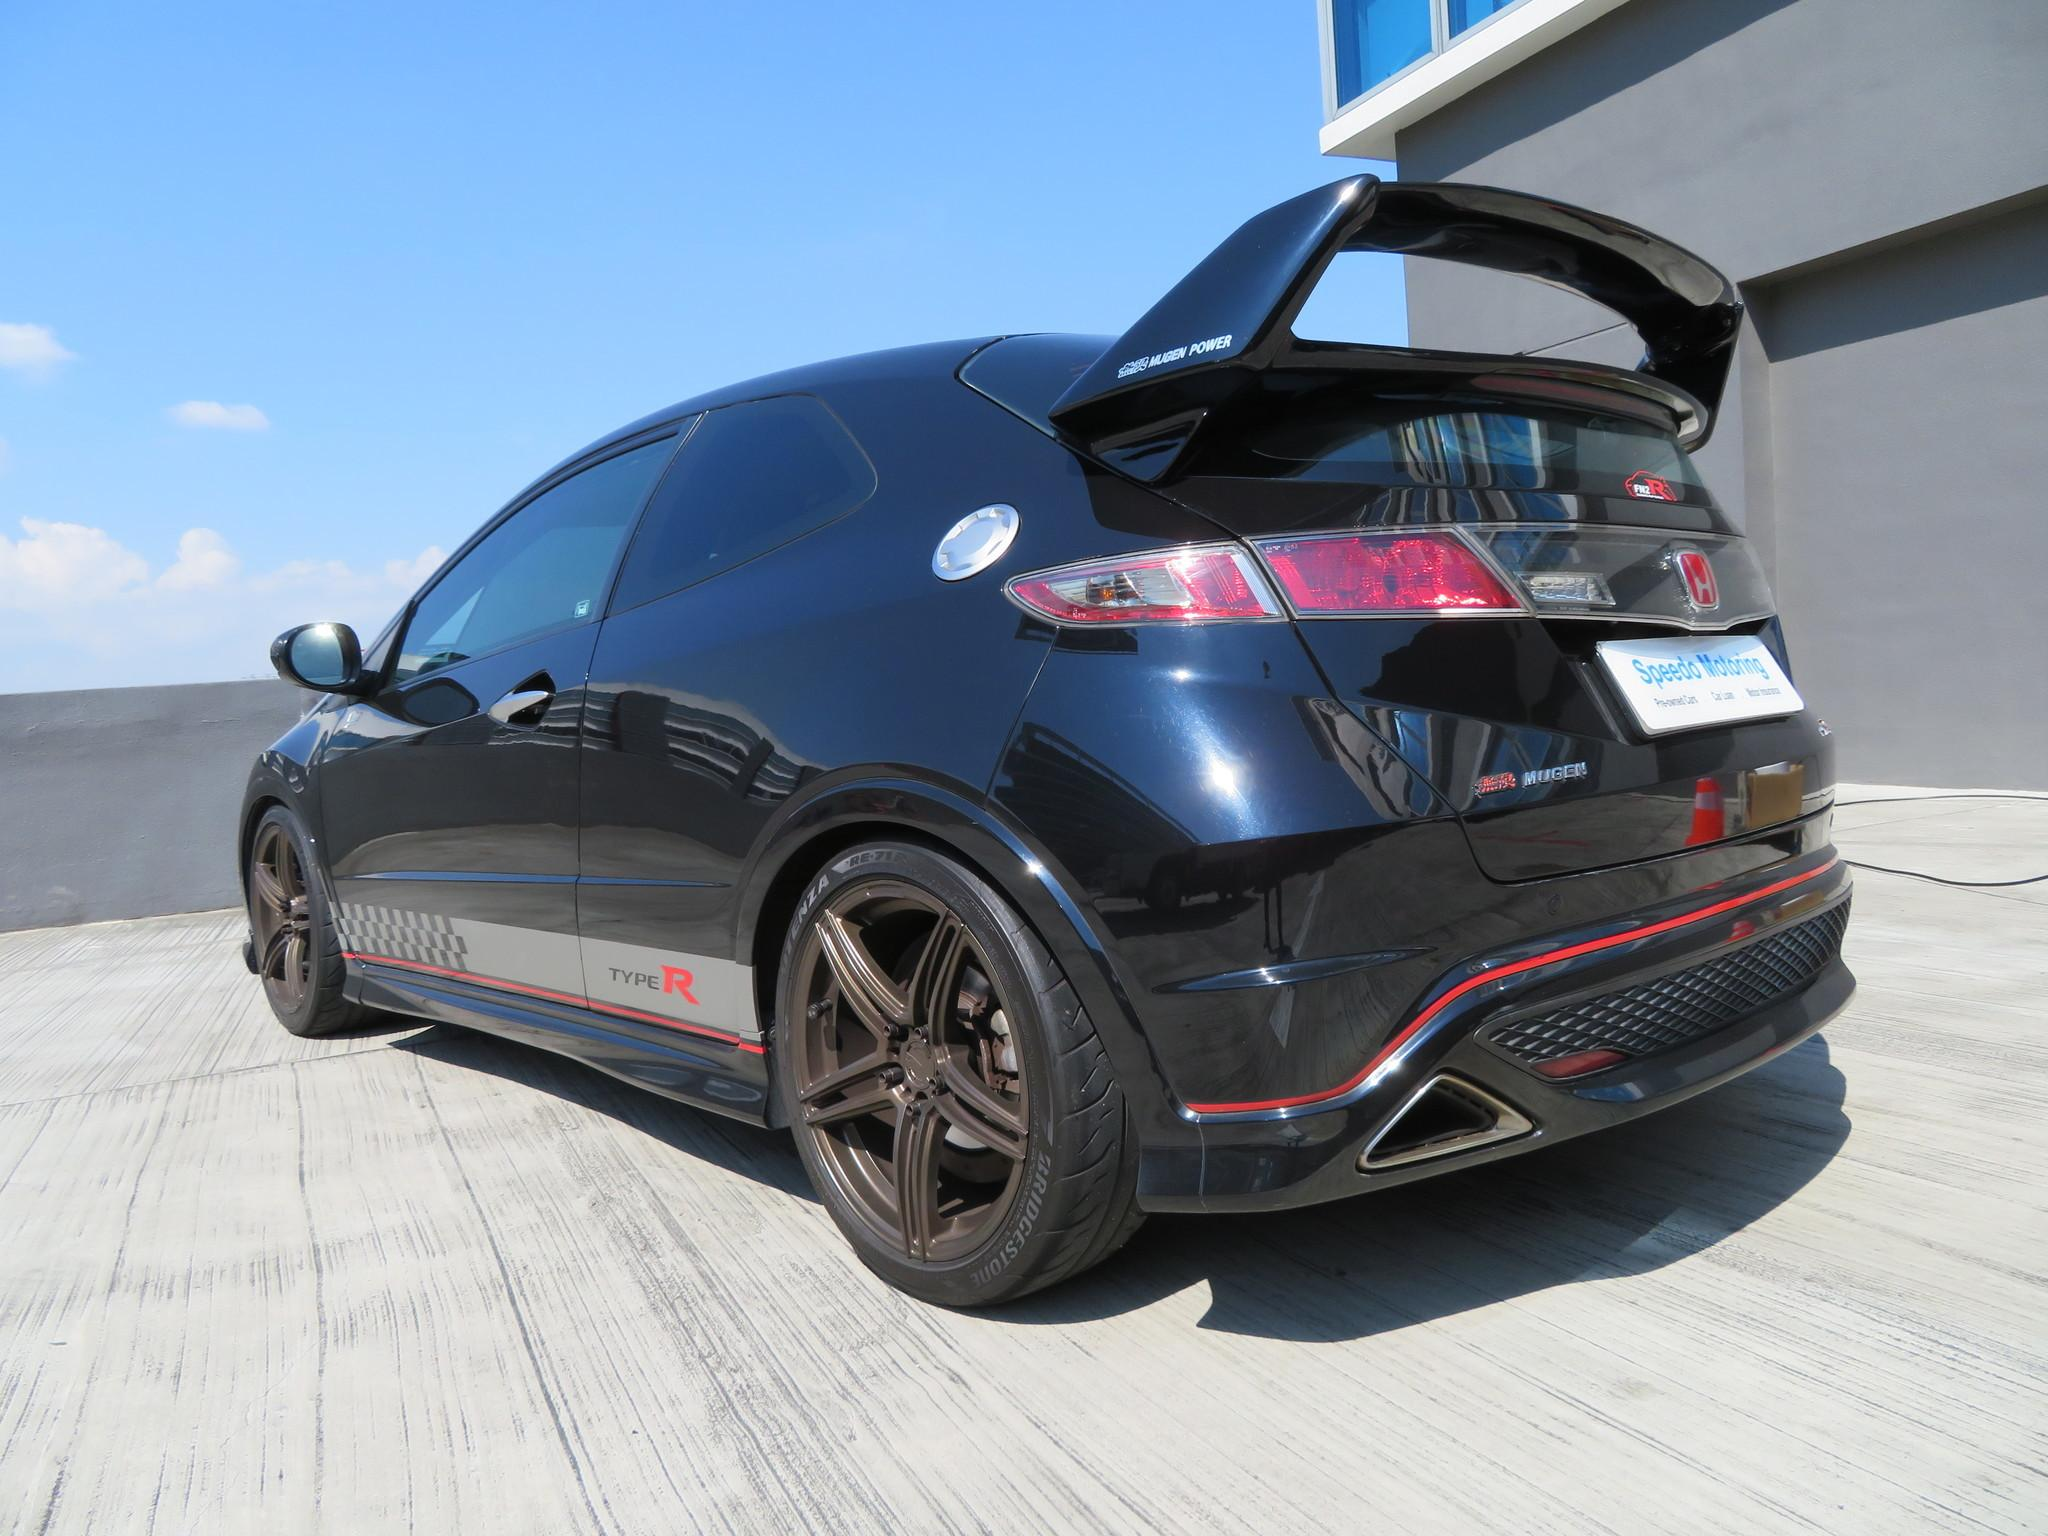 Honda Civic 2.0 Type R Hatchback VTEC Turbo Manual